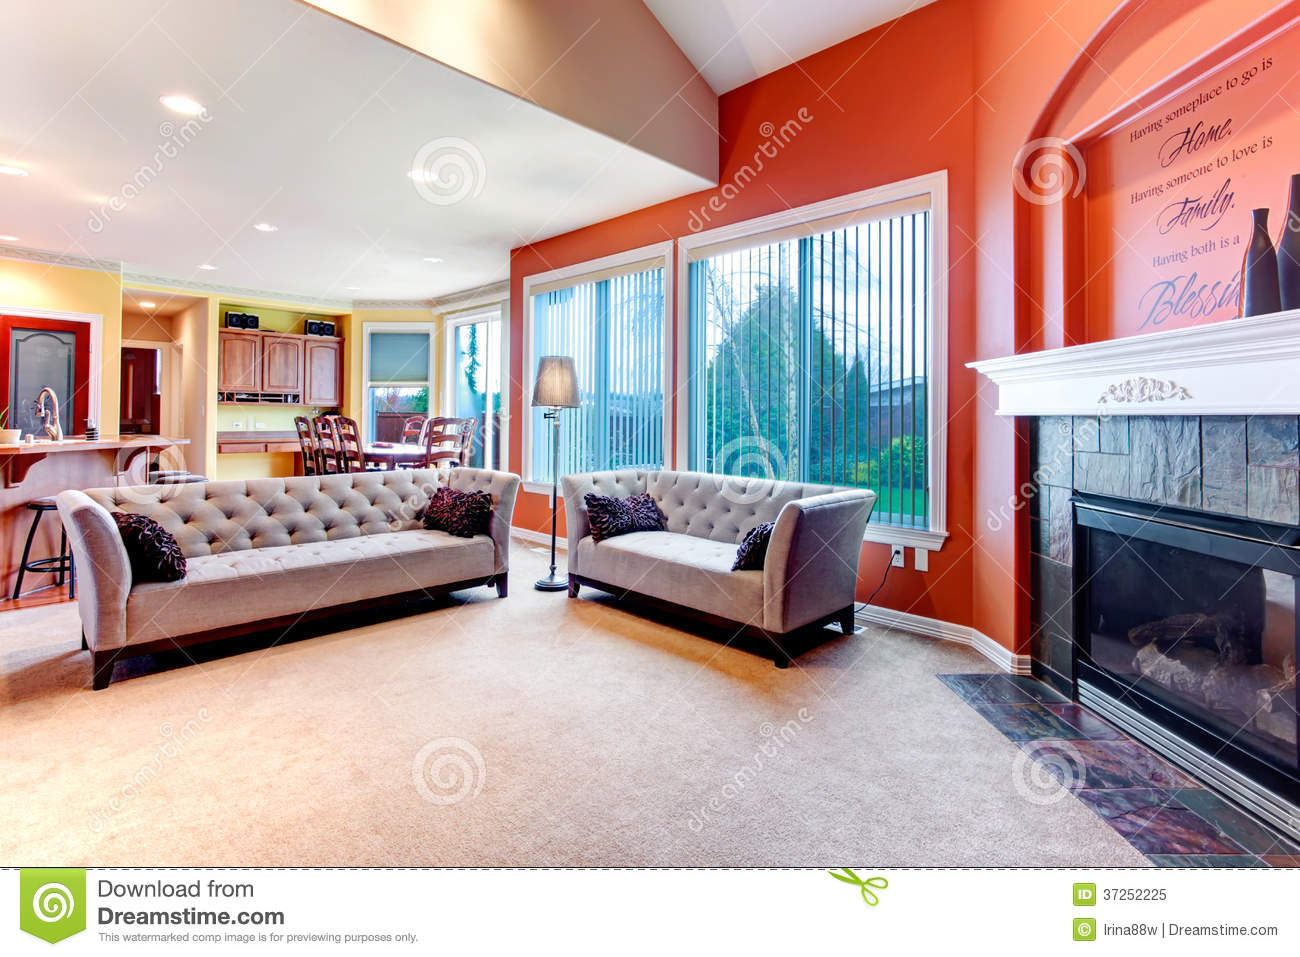 bright orange color scheme